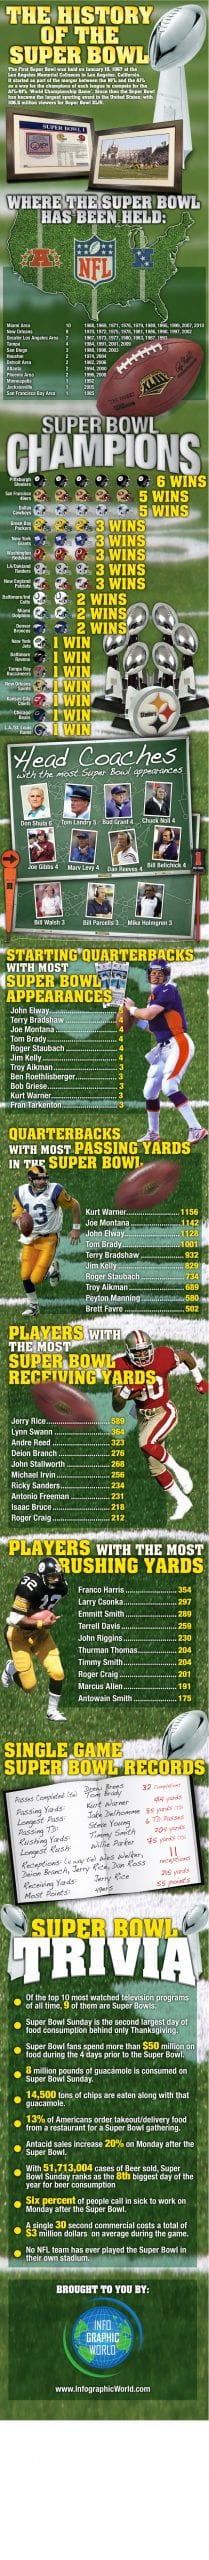 History of the Superbowl Infographic